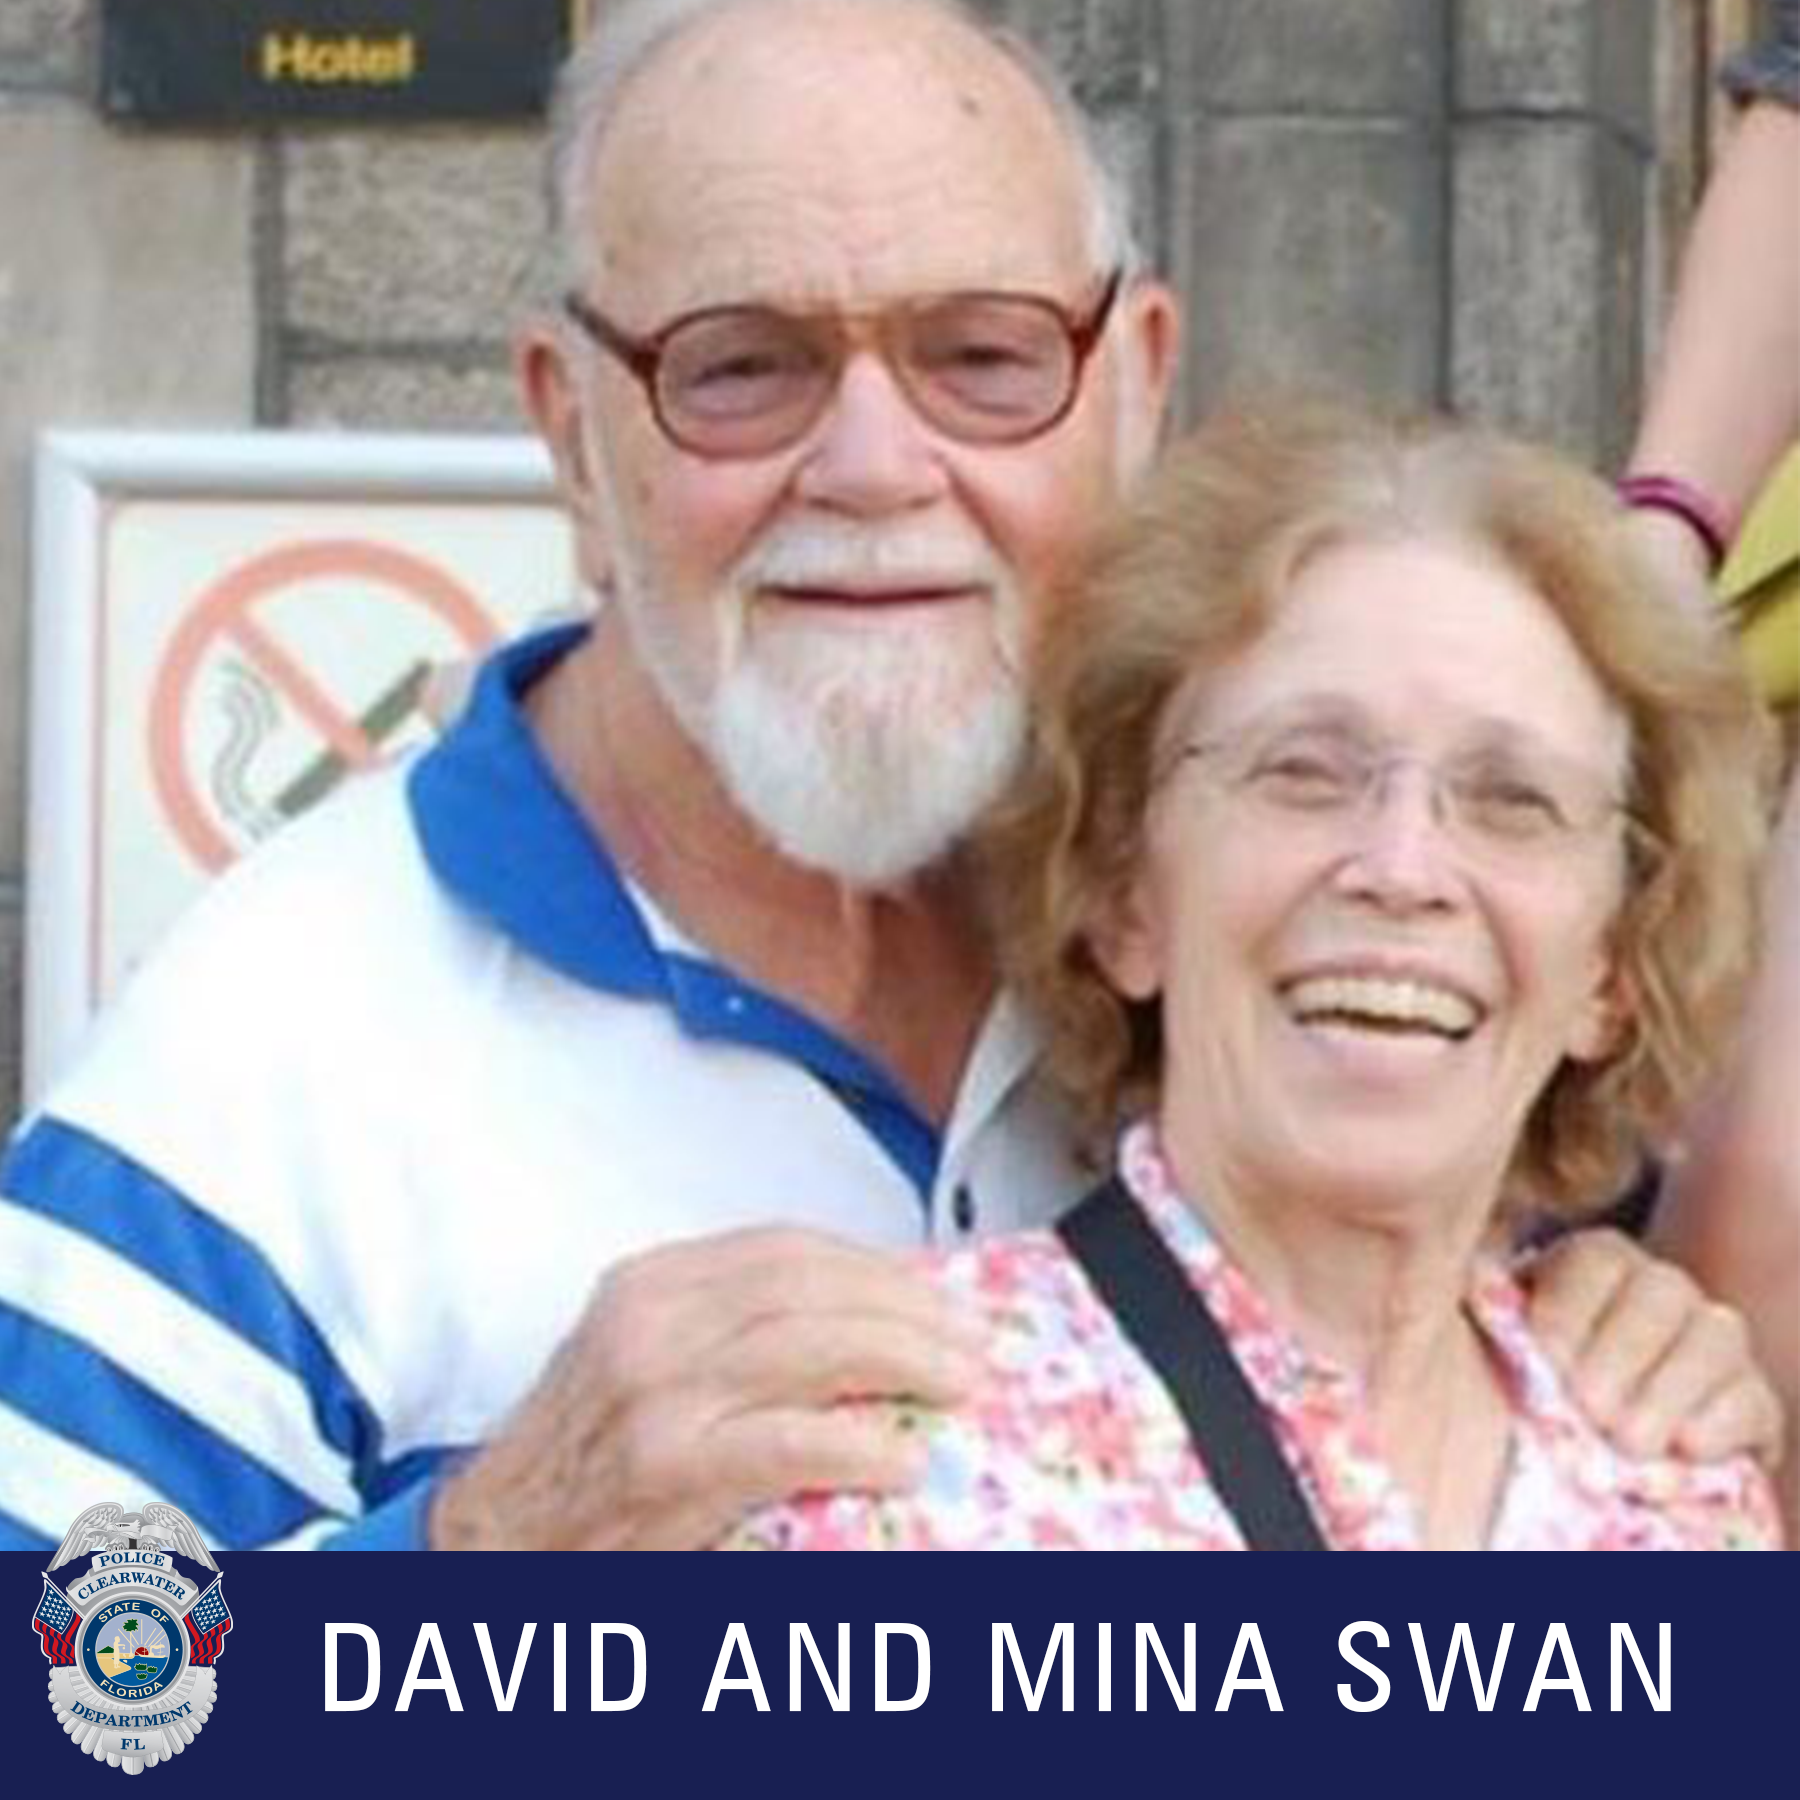 David and Mina Swan, Clearwater Police Department Shield, Cacausion male wearing black glasses and white and blue striped collared shirt hold on to a female's shoulder who is wearing glasses, smiling at the camera